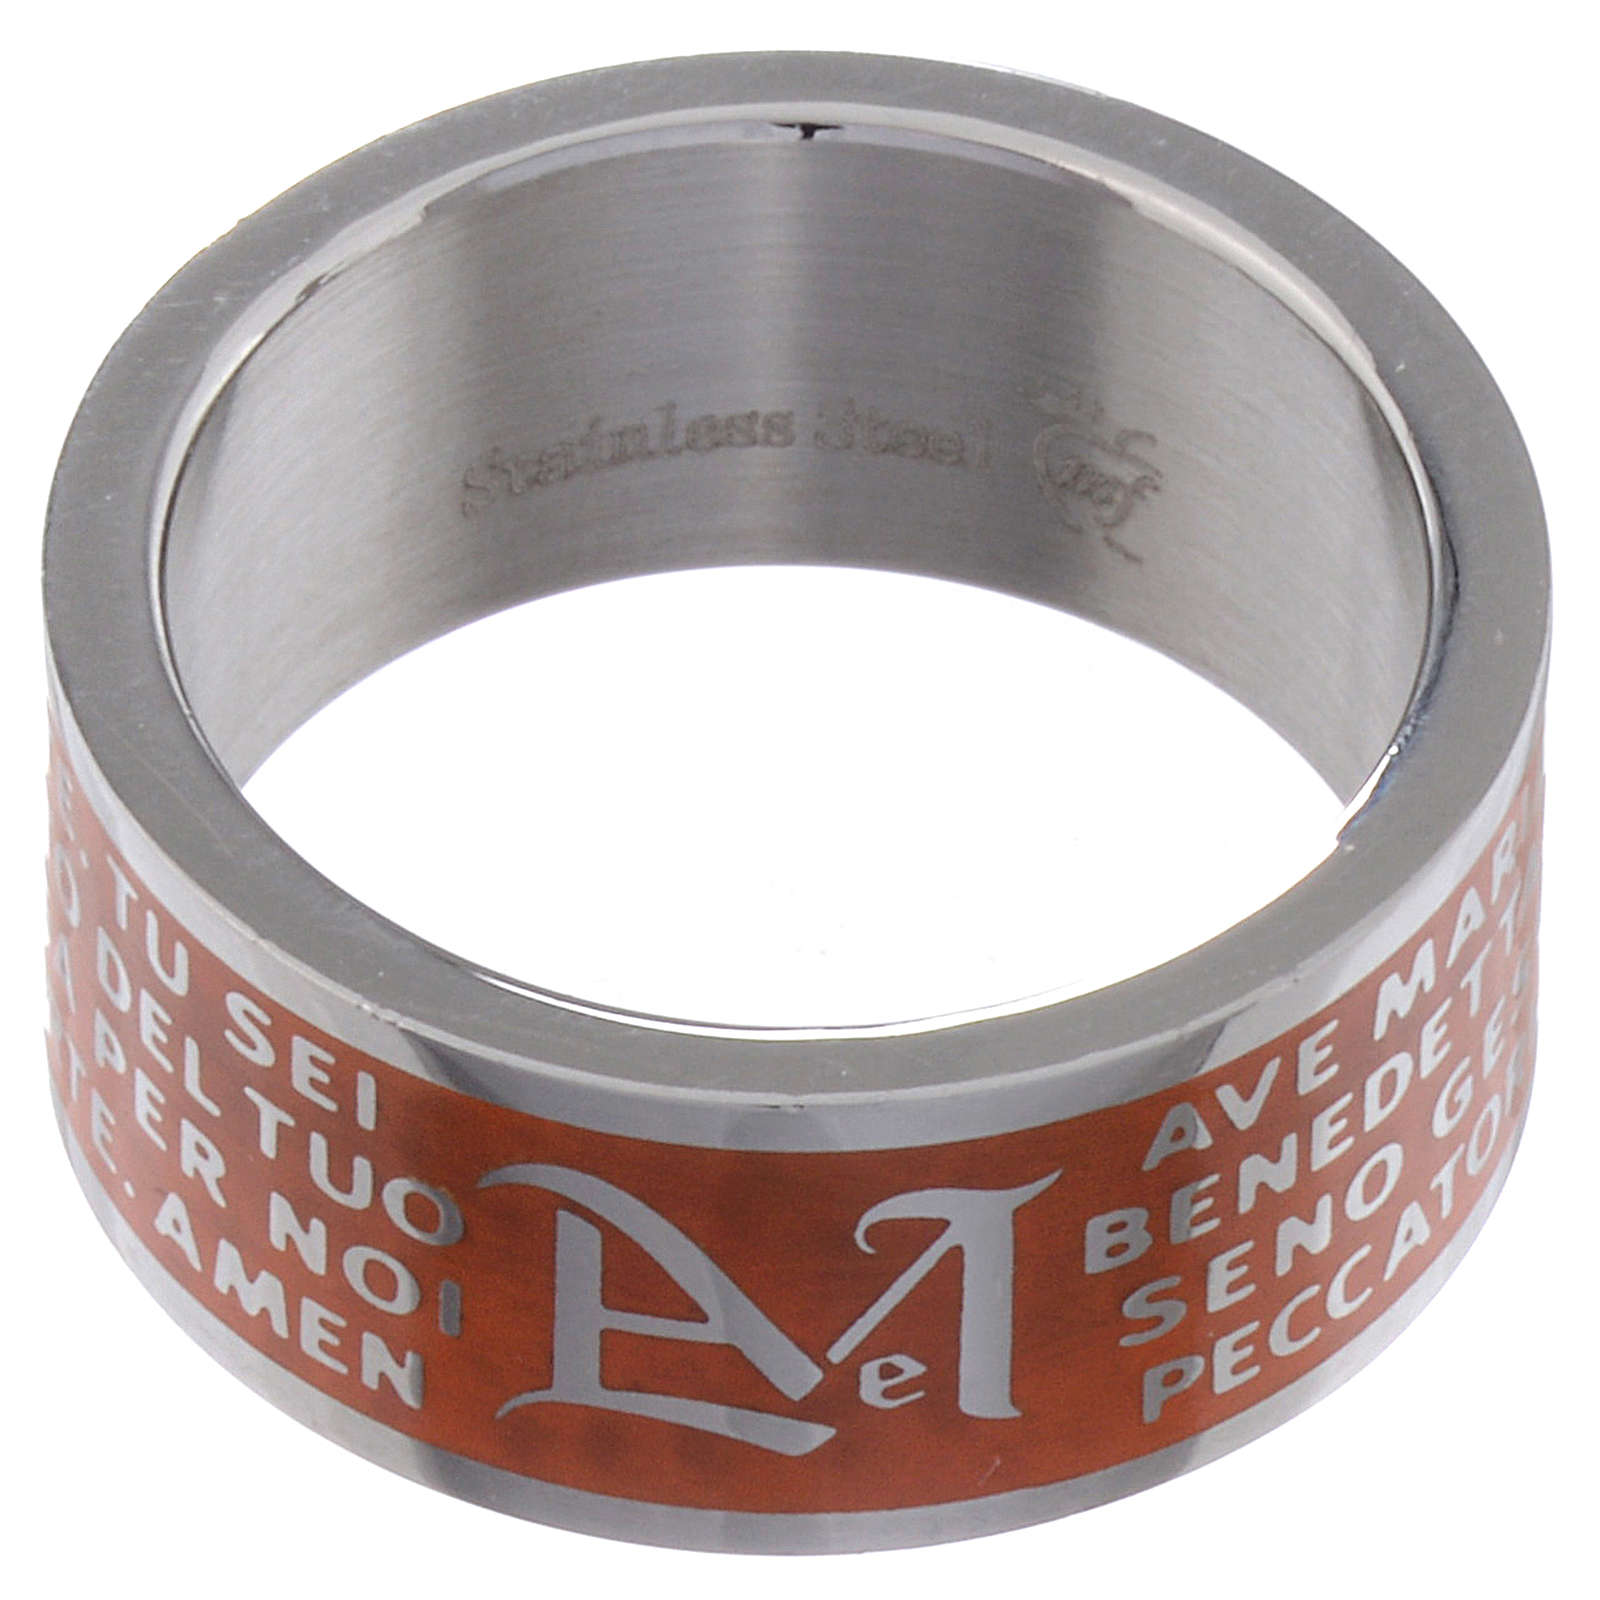 Hail Mary prayer ring orange - stainless steel LUX 3